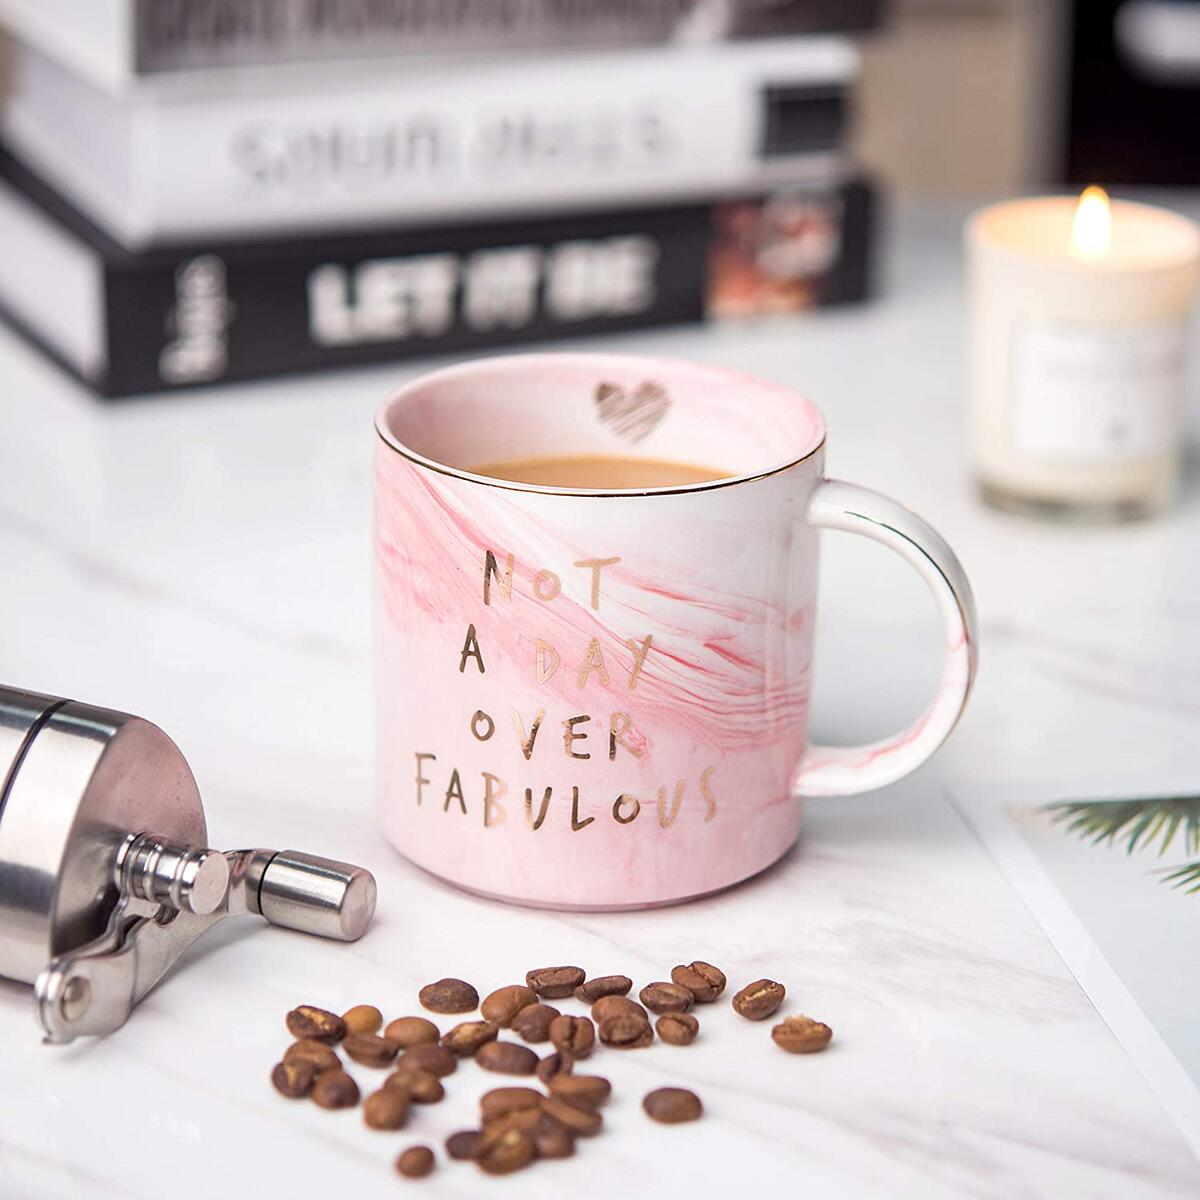 Not a Day Over Fabulous - Funny Birthday, Mothers Day Gifts Ideas for Women, Wife, Mom, Daughter, Sister, Aunt, Best Friends, BFF, Coworkers, Her - Pink Marble Mug, Ceramic Coffee Cup